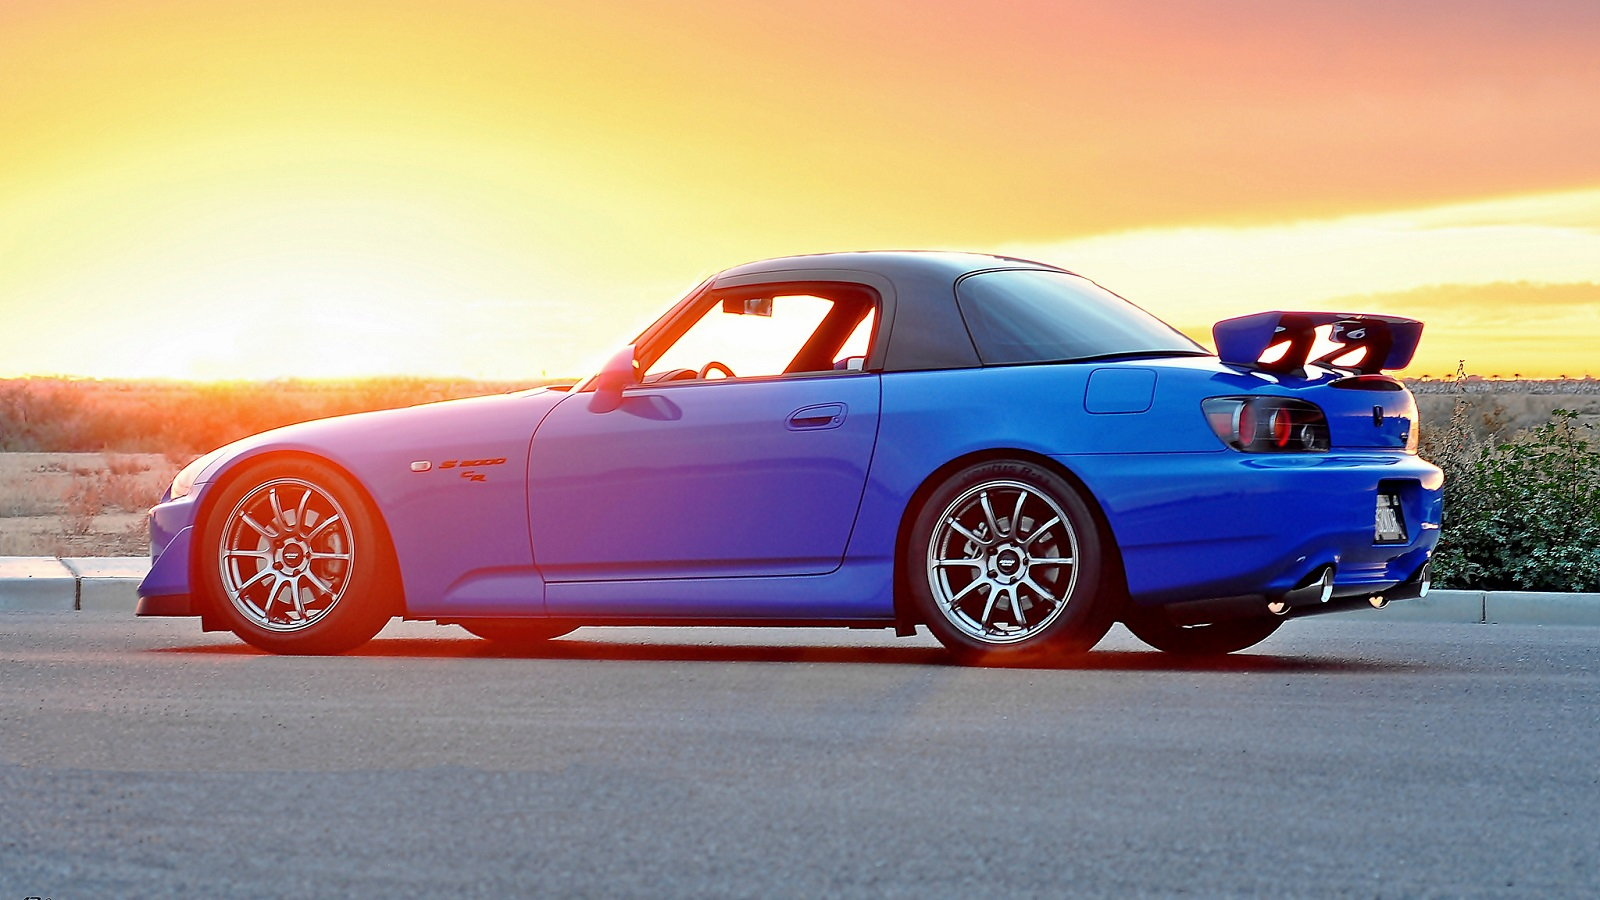 How to Install a Hardtop on your S2000